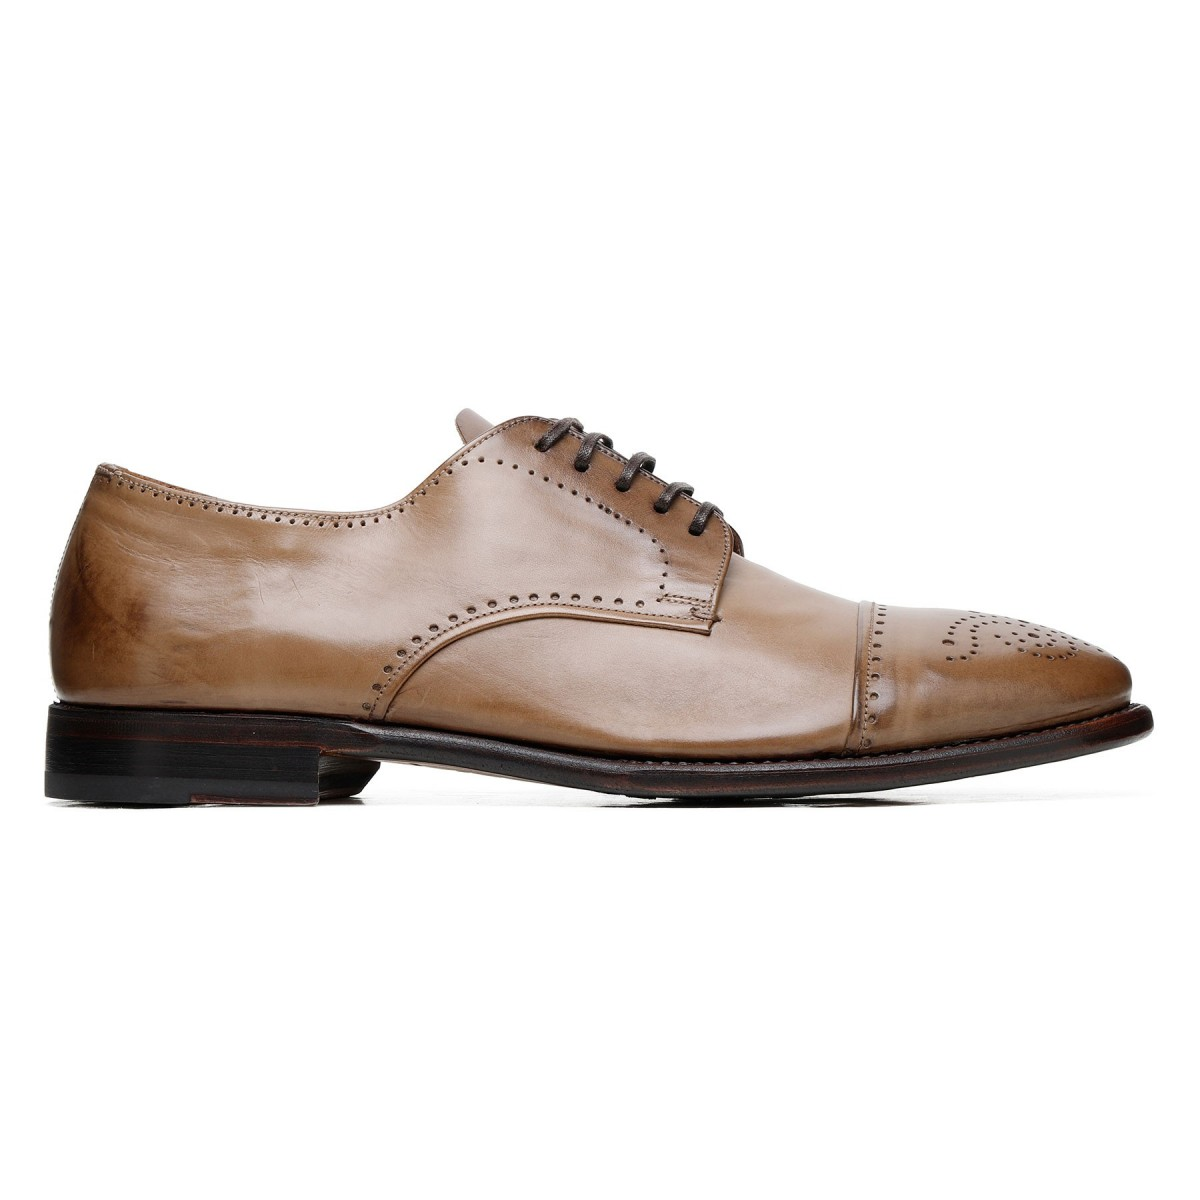 Brogue leather Derby shoes